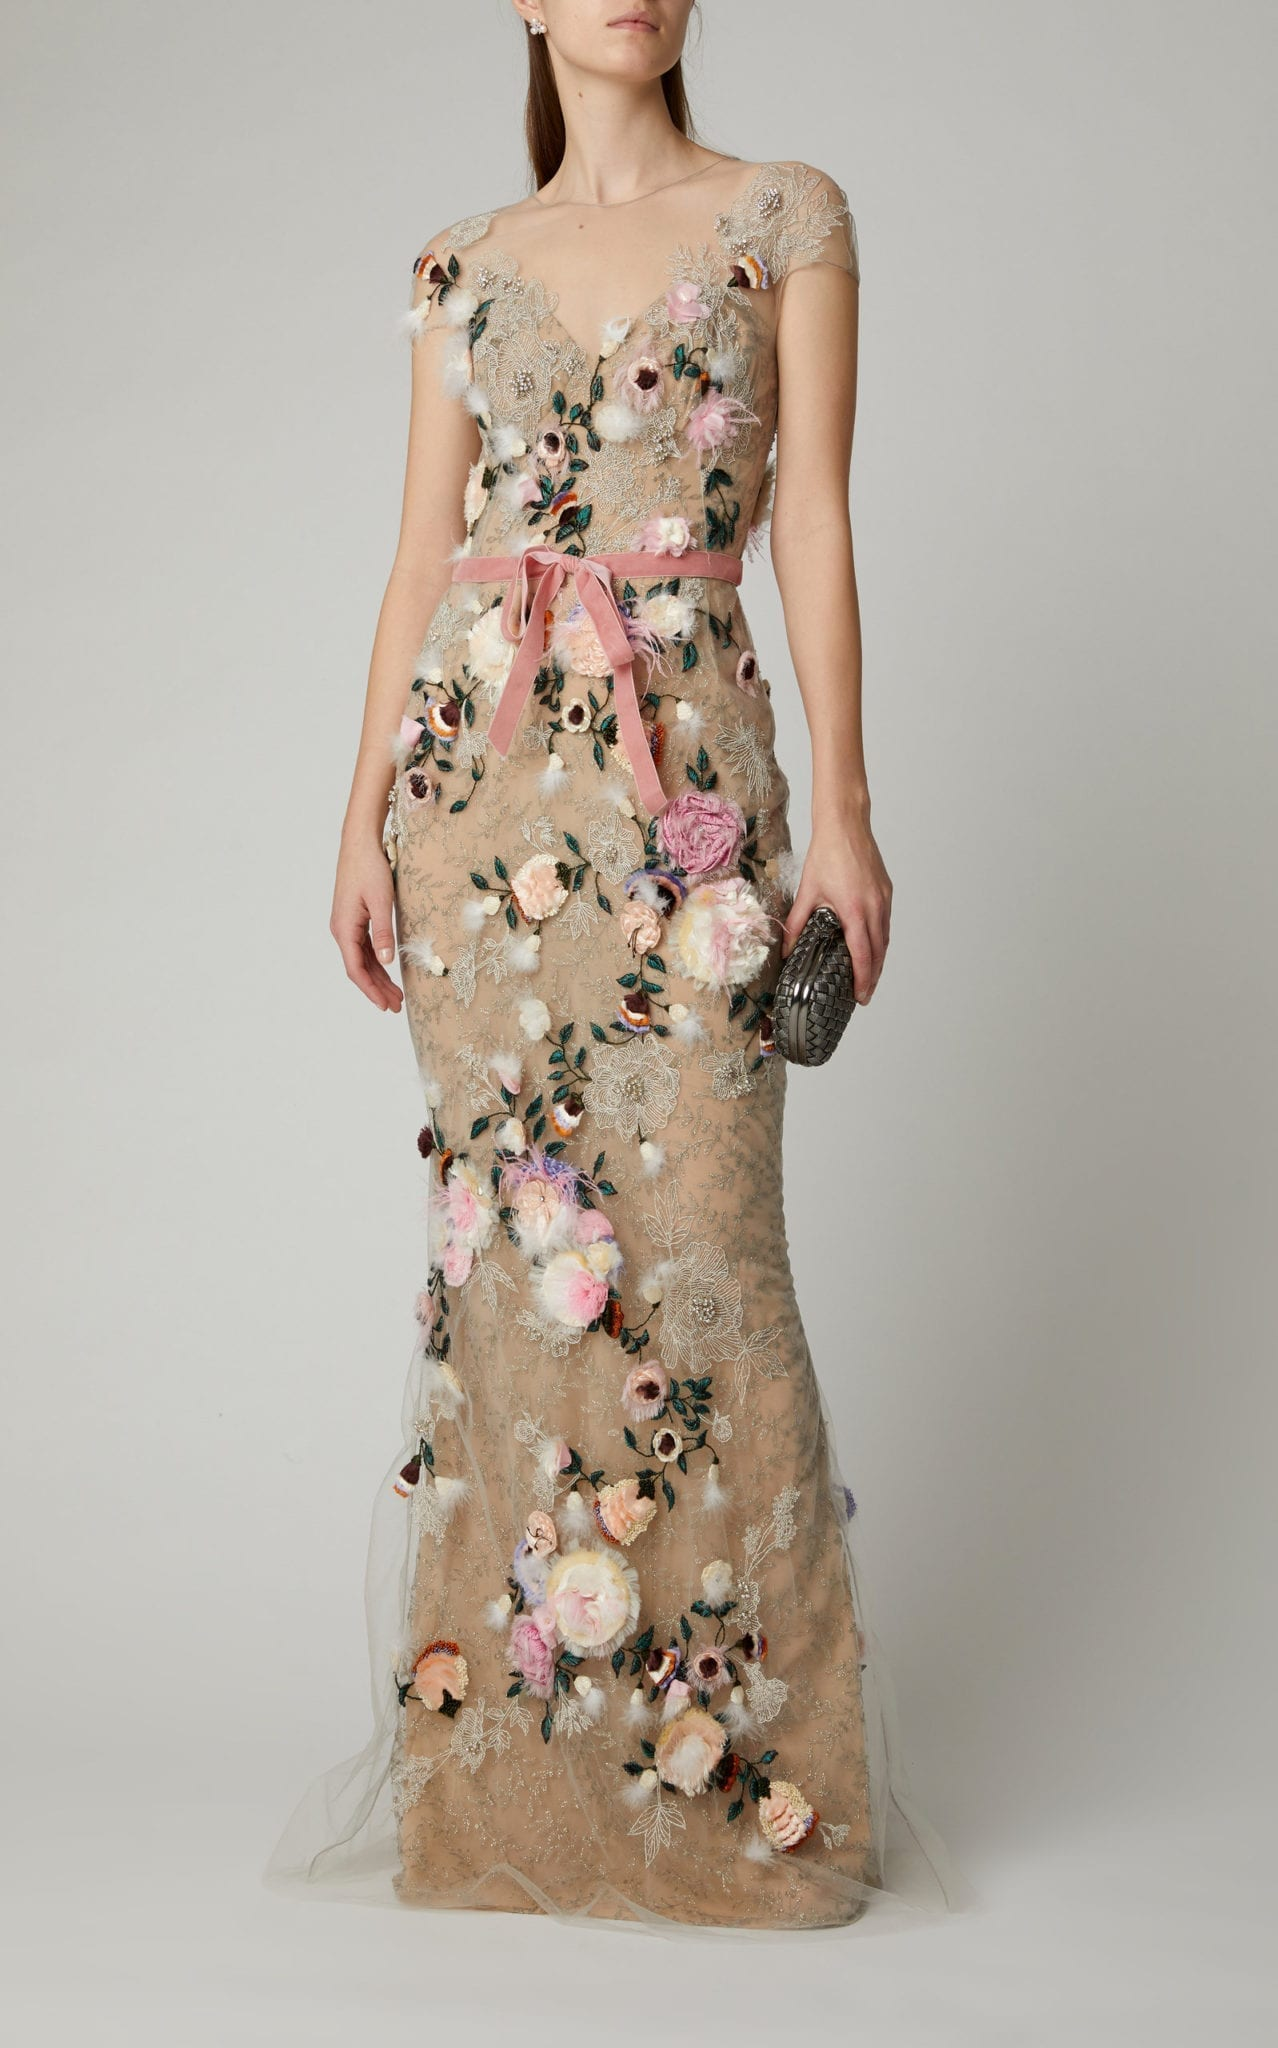 MARCHESA Feather-Trimmed Floral-Appliquéd Tulle Gown